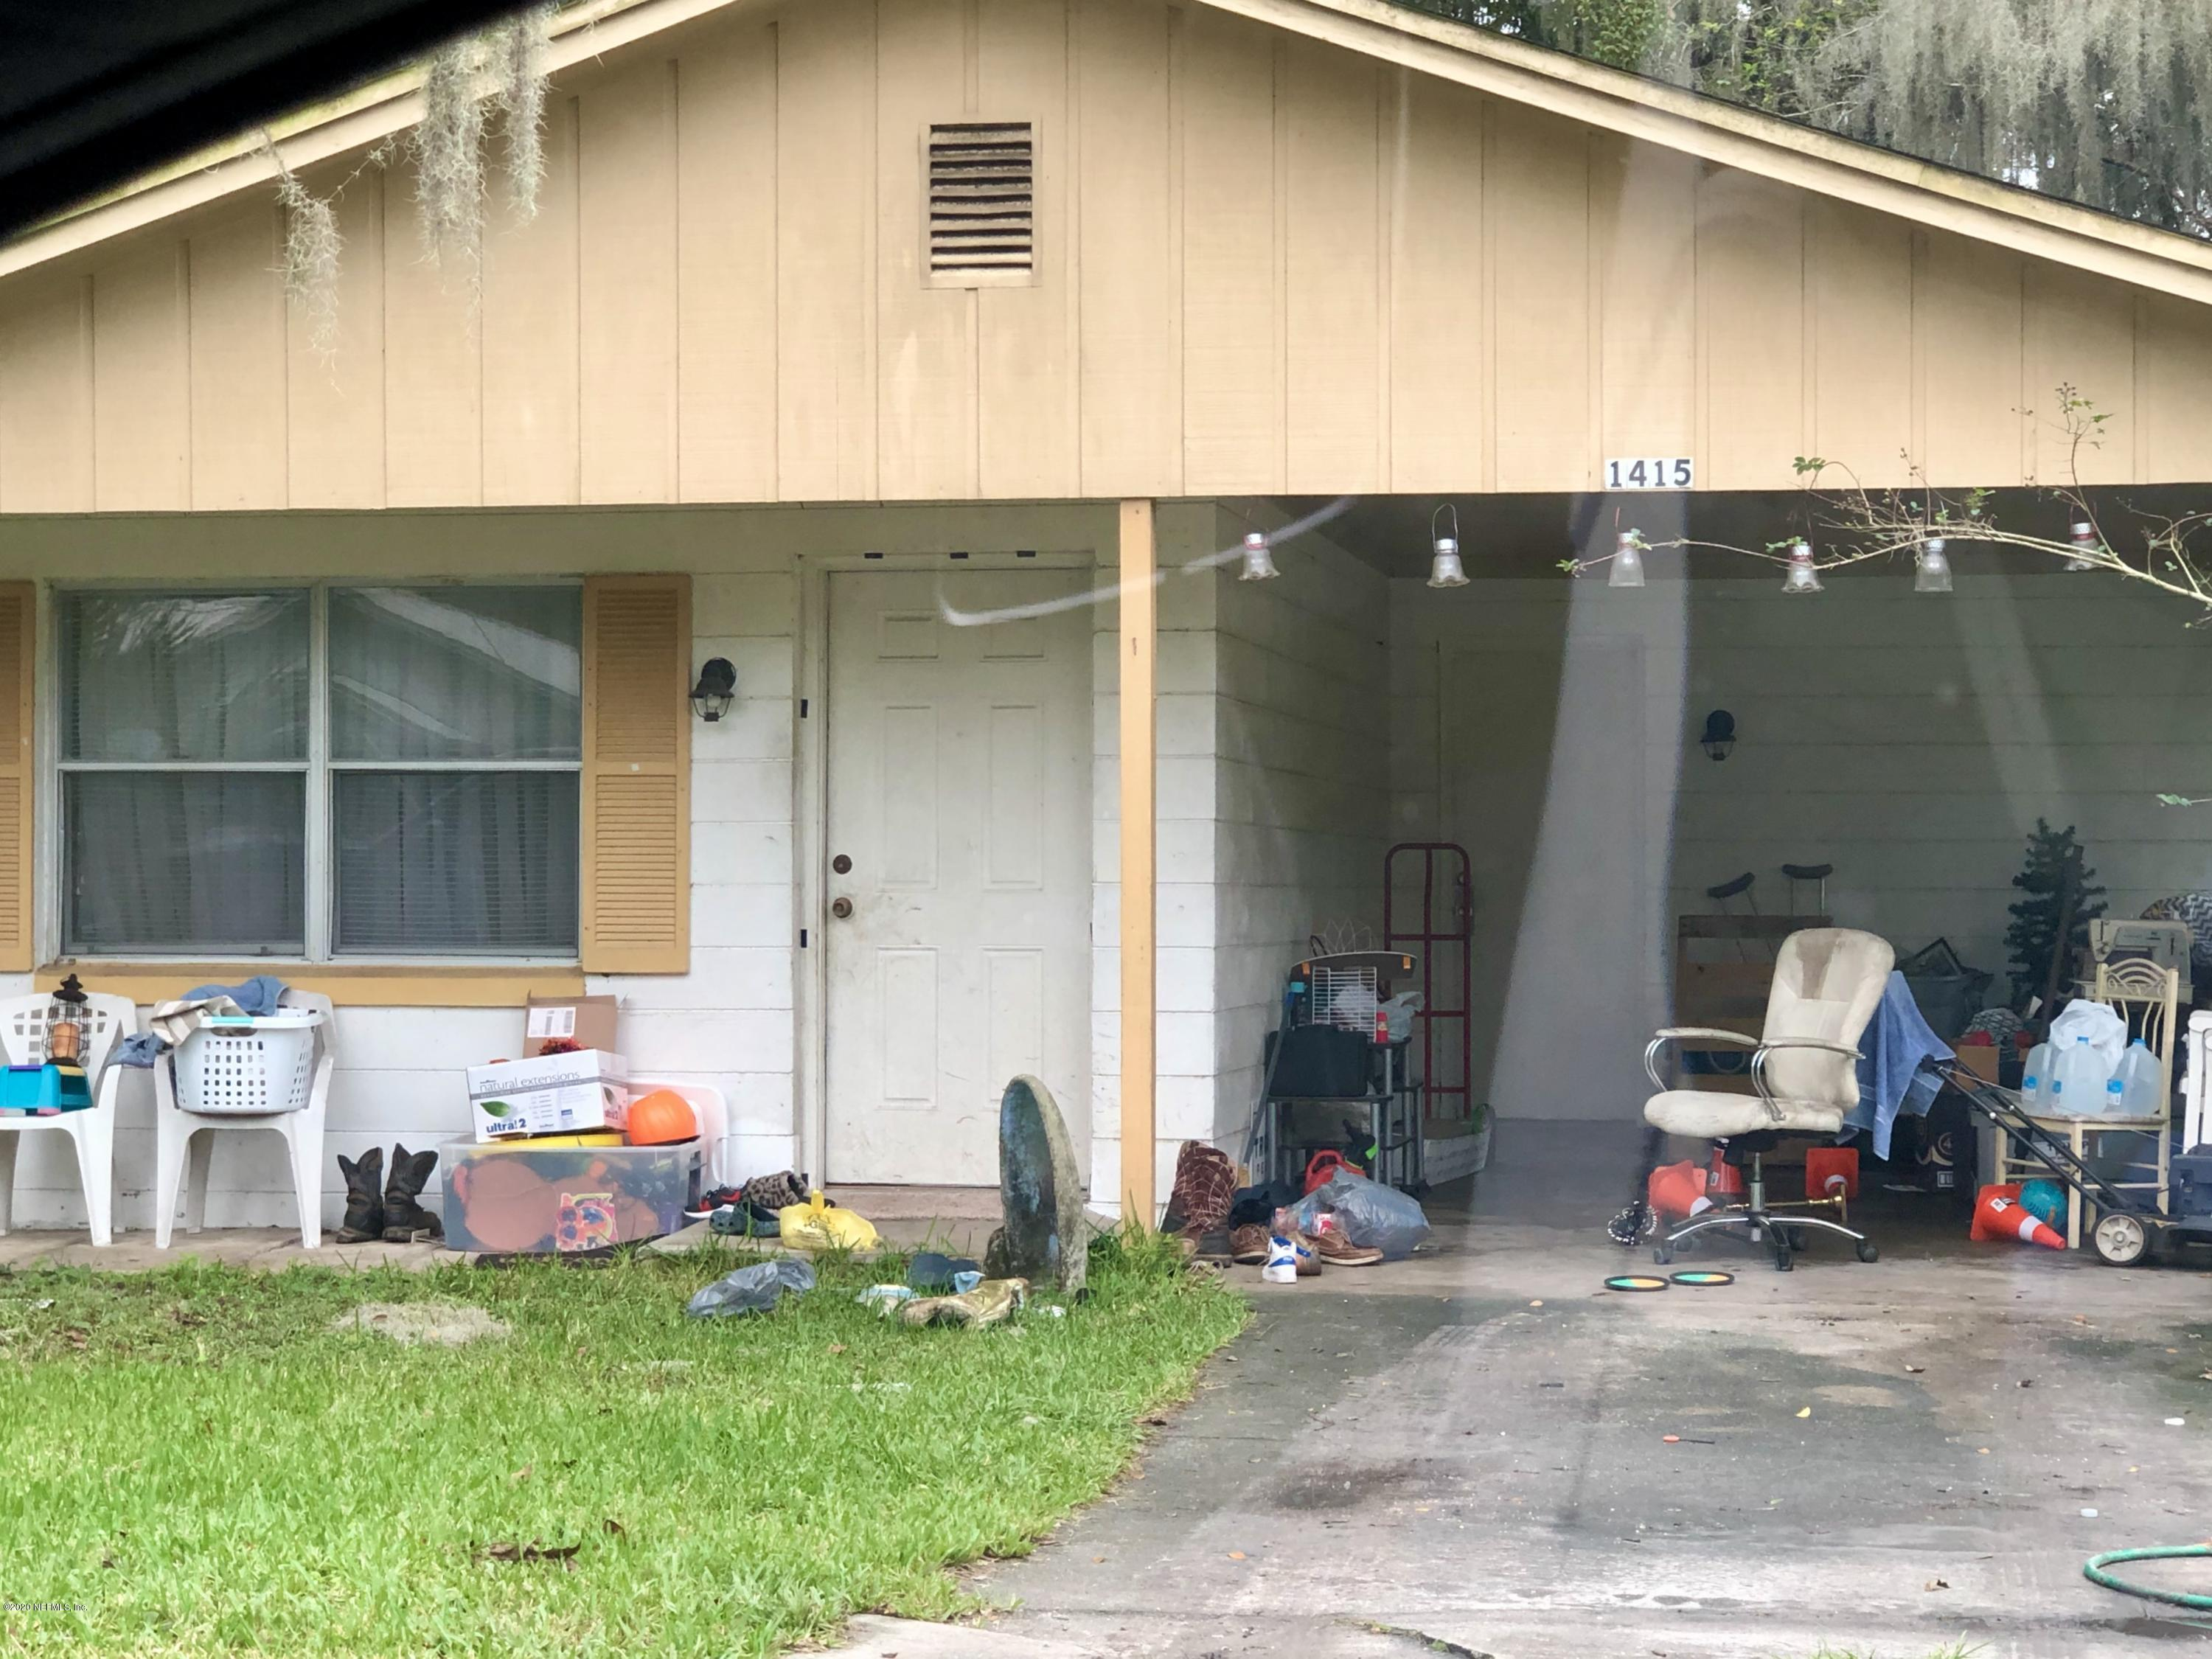 1415 CARR, PALATKA, FLORIDA 32177, 3 Bedrooms Bedrooms, ,1 BathroomBathrooms,Residential,For sale,CARR,1083237